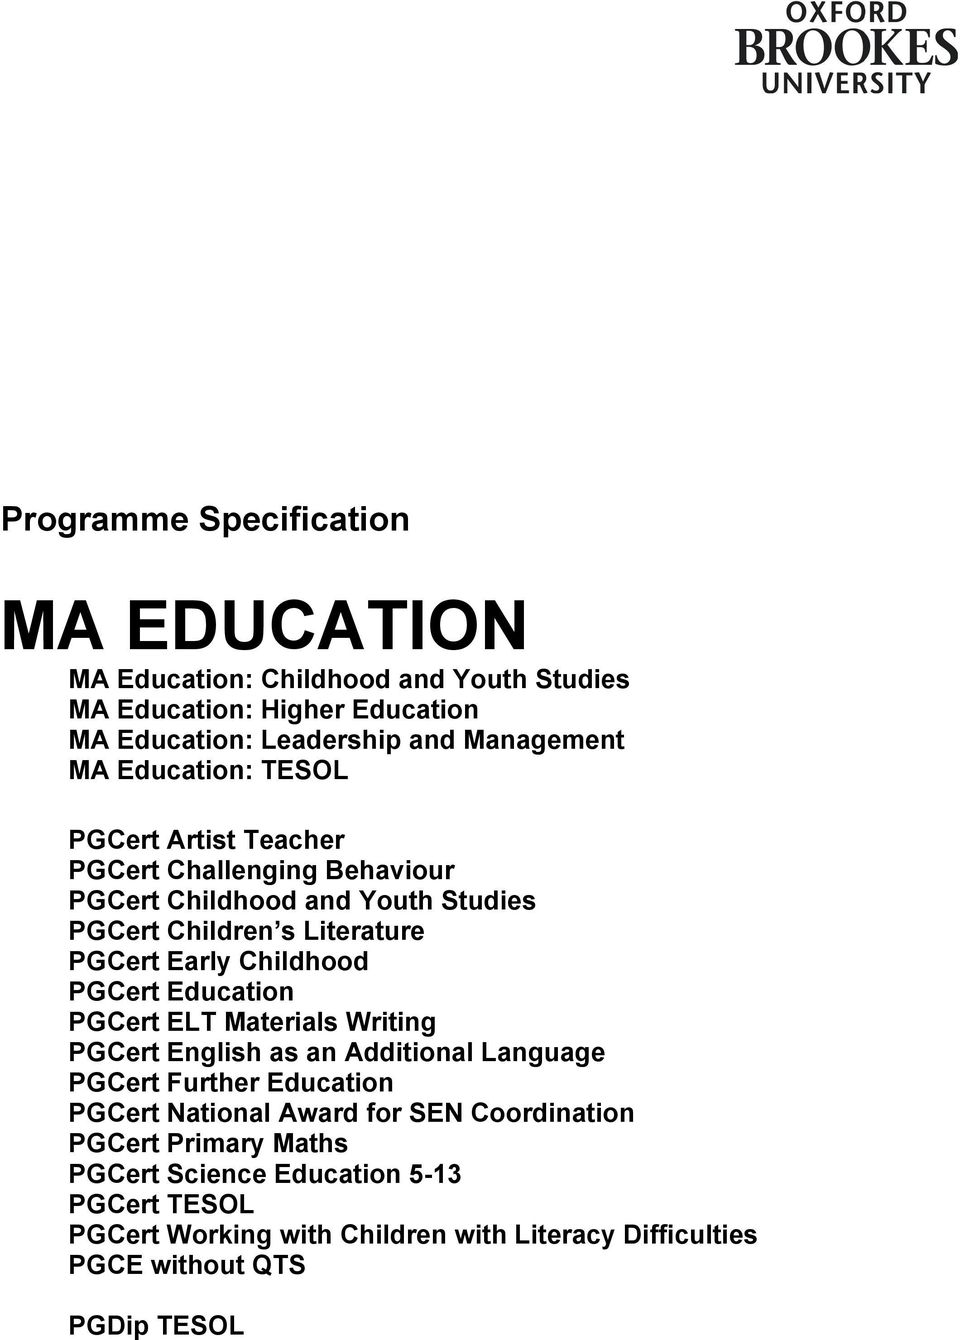 Childhood PGCert Education PGCert ELT Materials Writing PGCert English as an Additional Language PGCert Further Education PGCert National Award for SEN